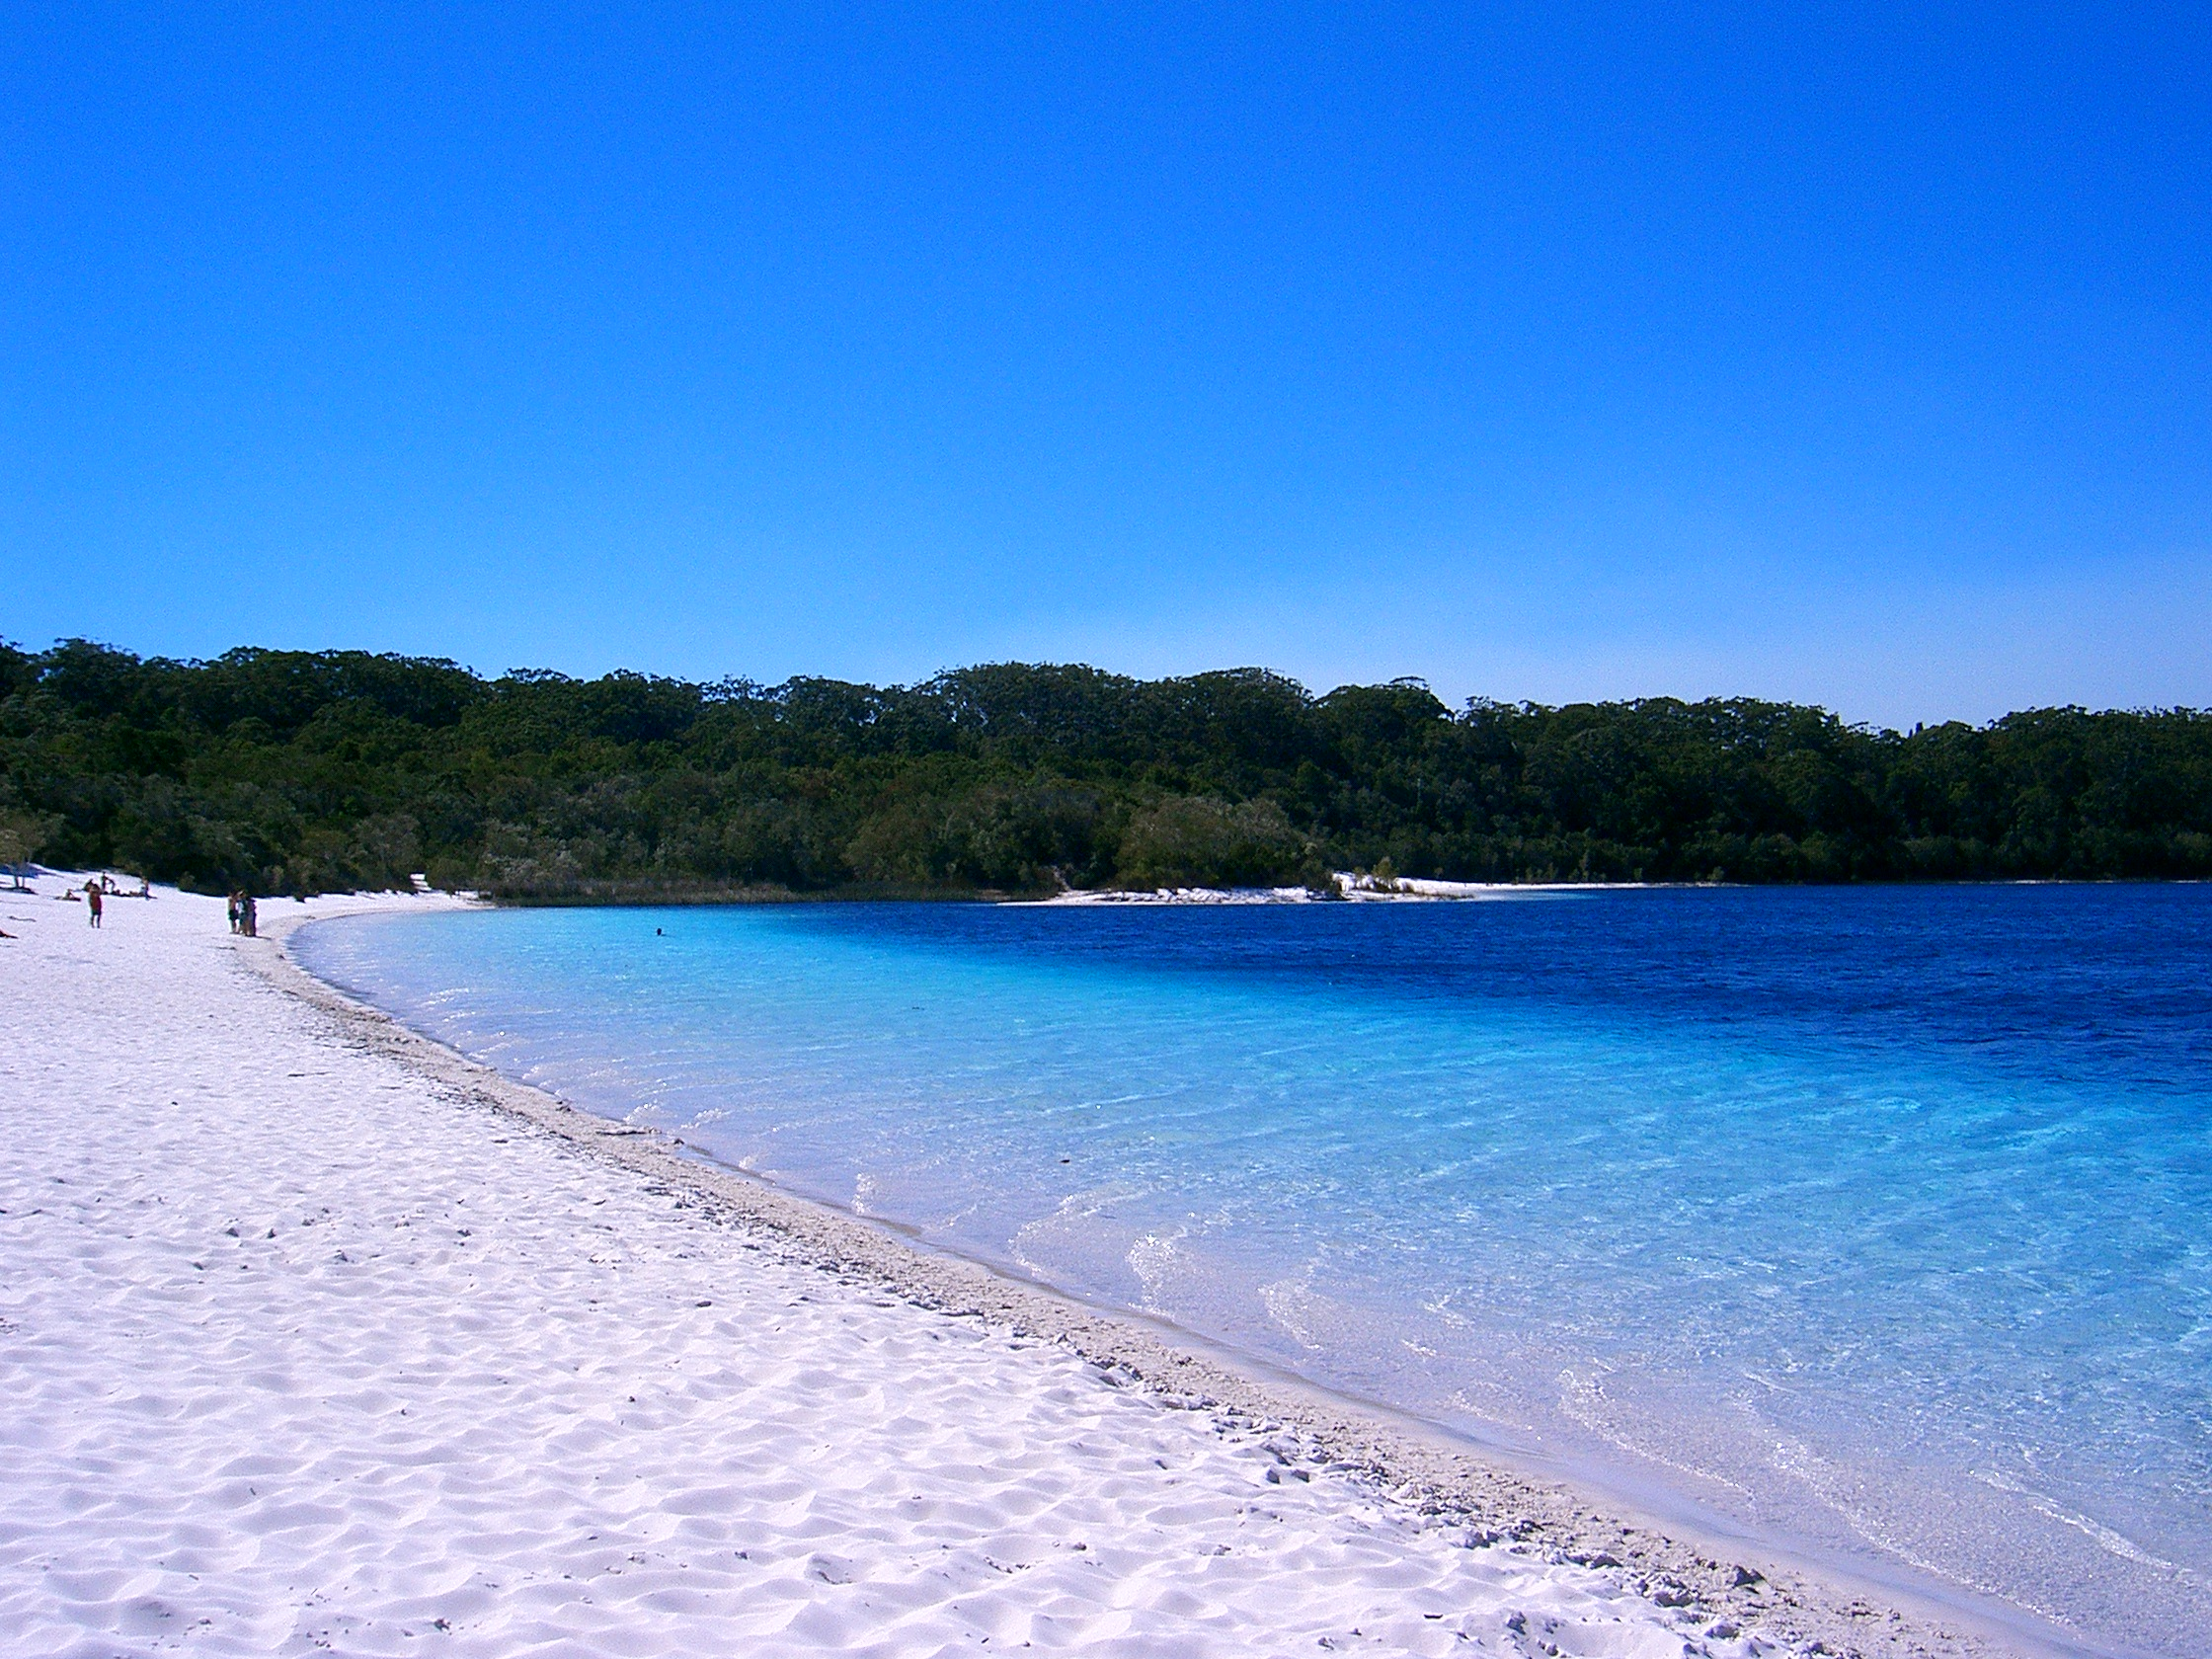 The beaches of Fraser Island.